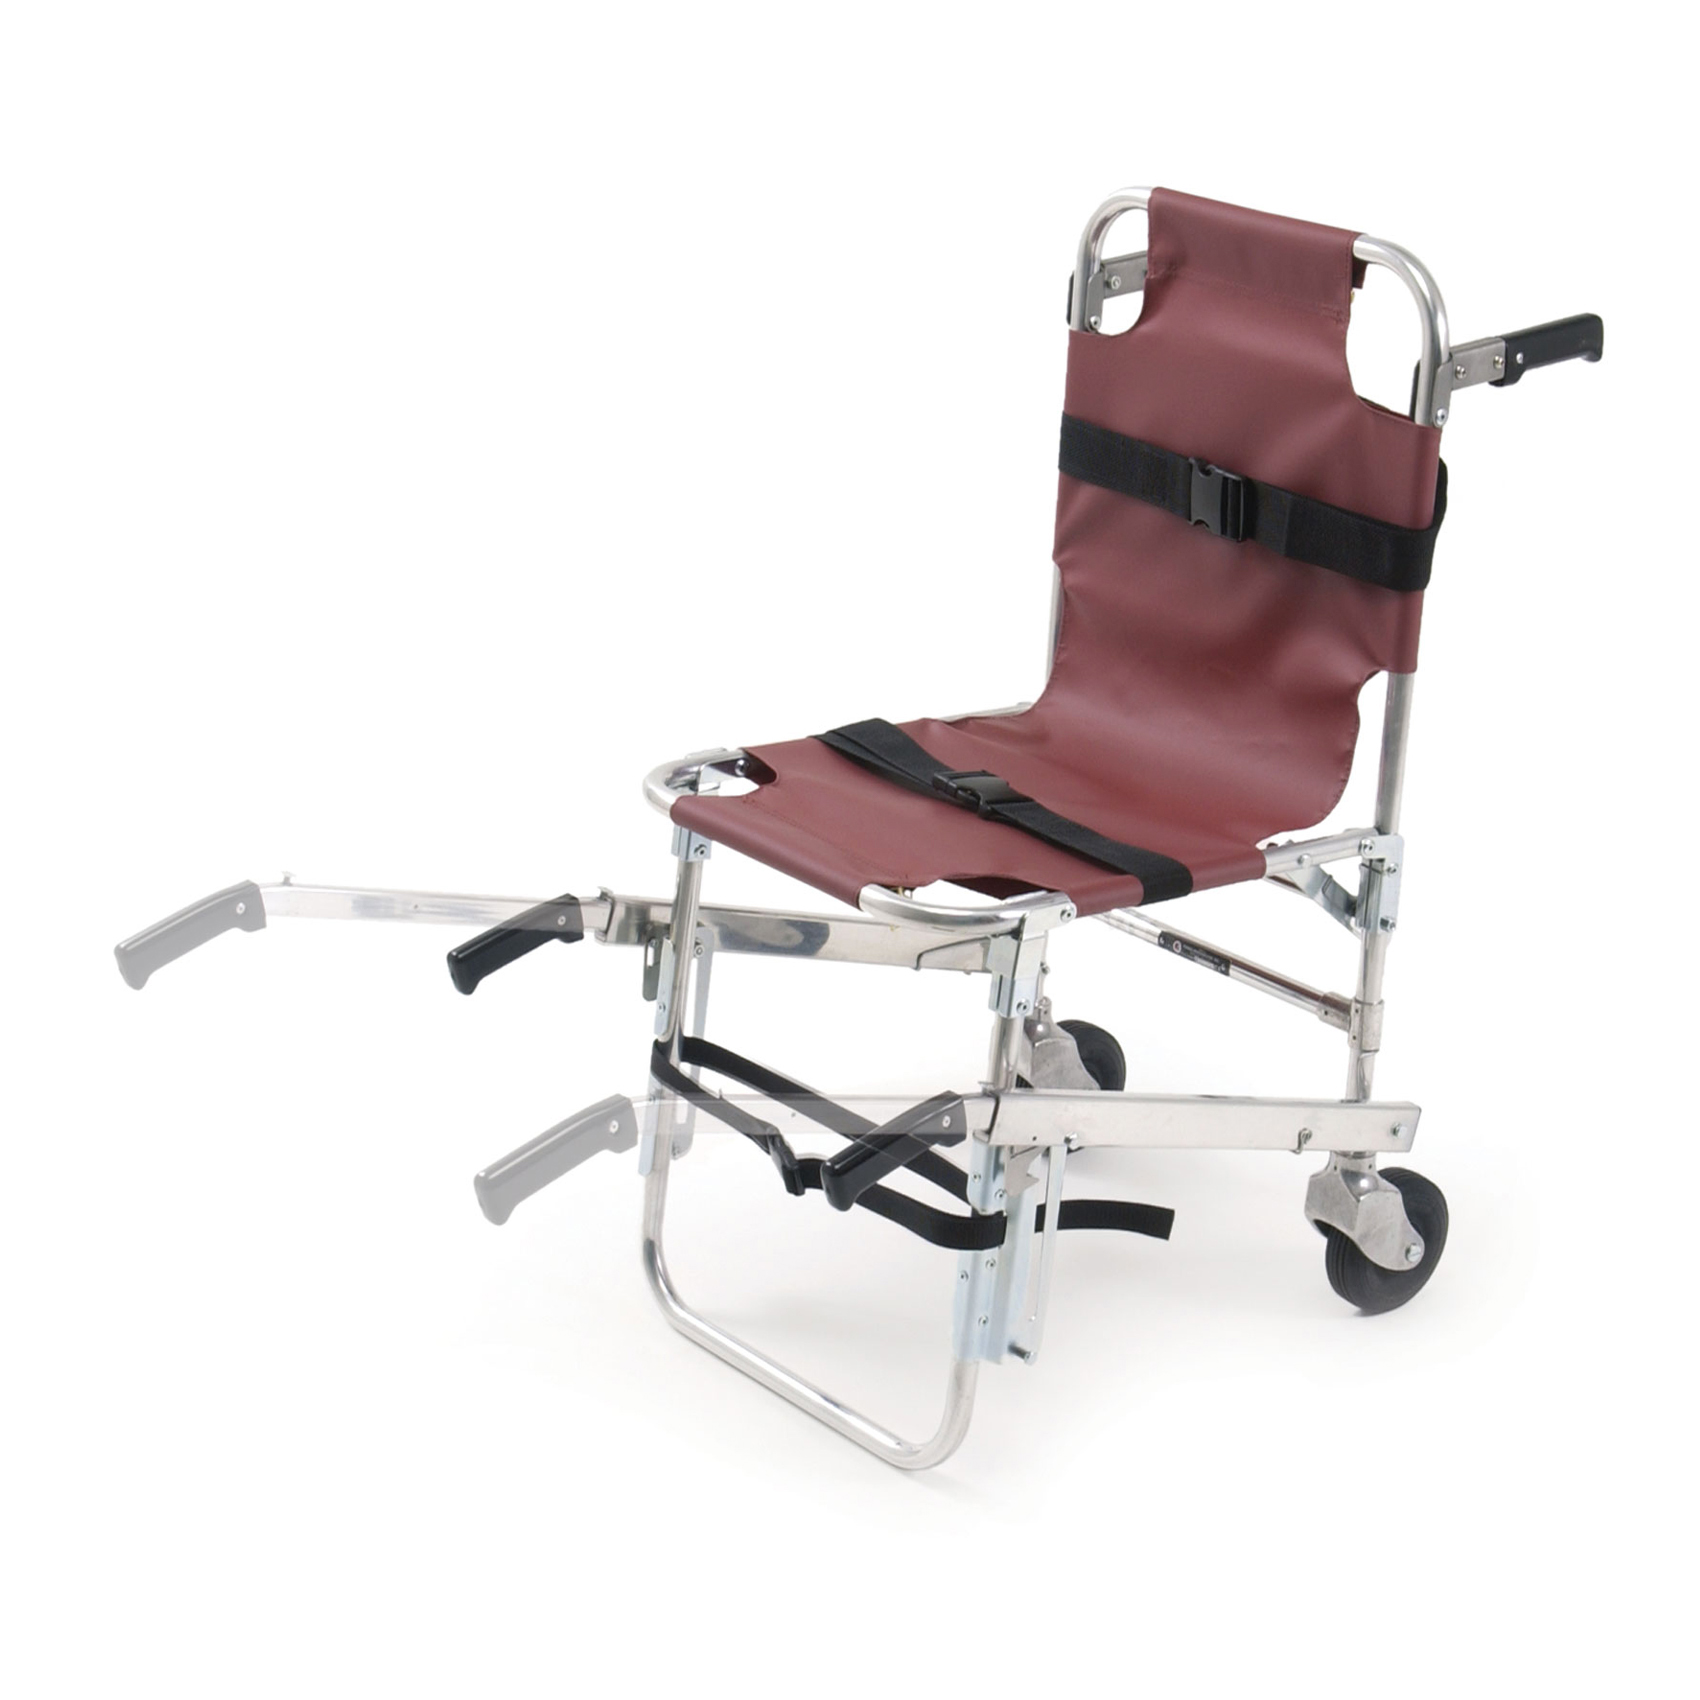 Stryker Stair Chair Ferno Model 40 Stair Chair Refurbished Stretchers